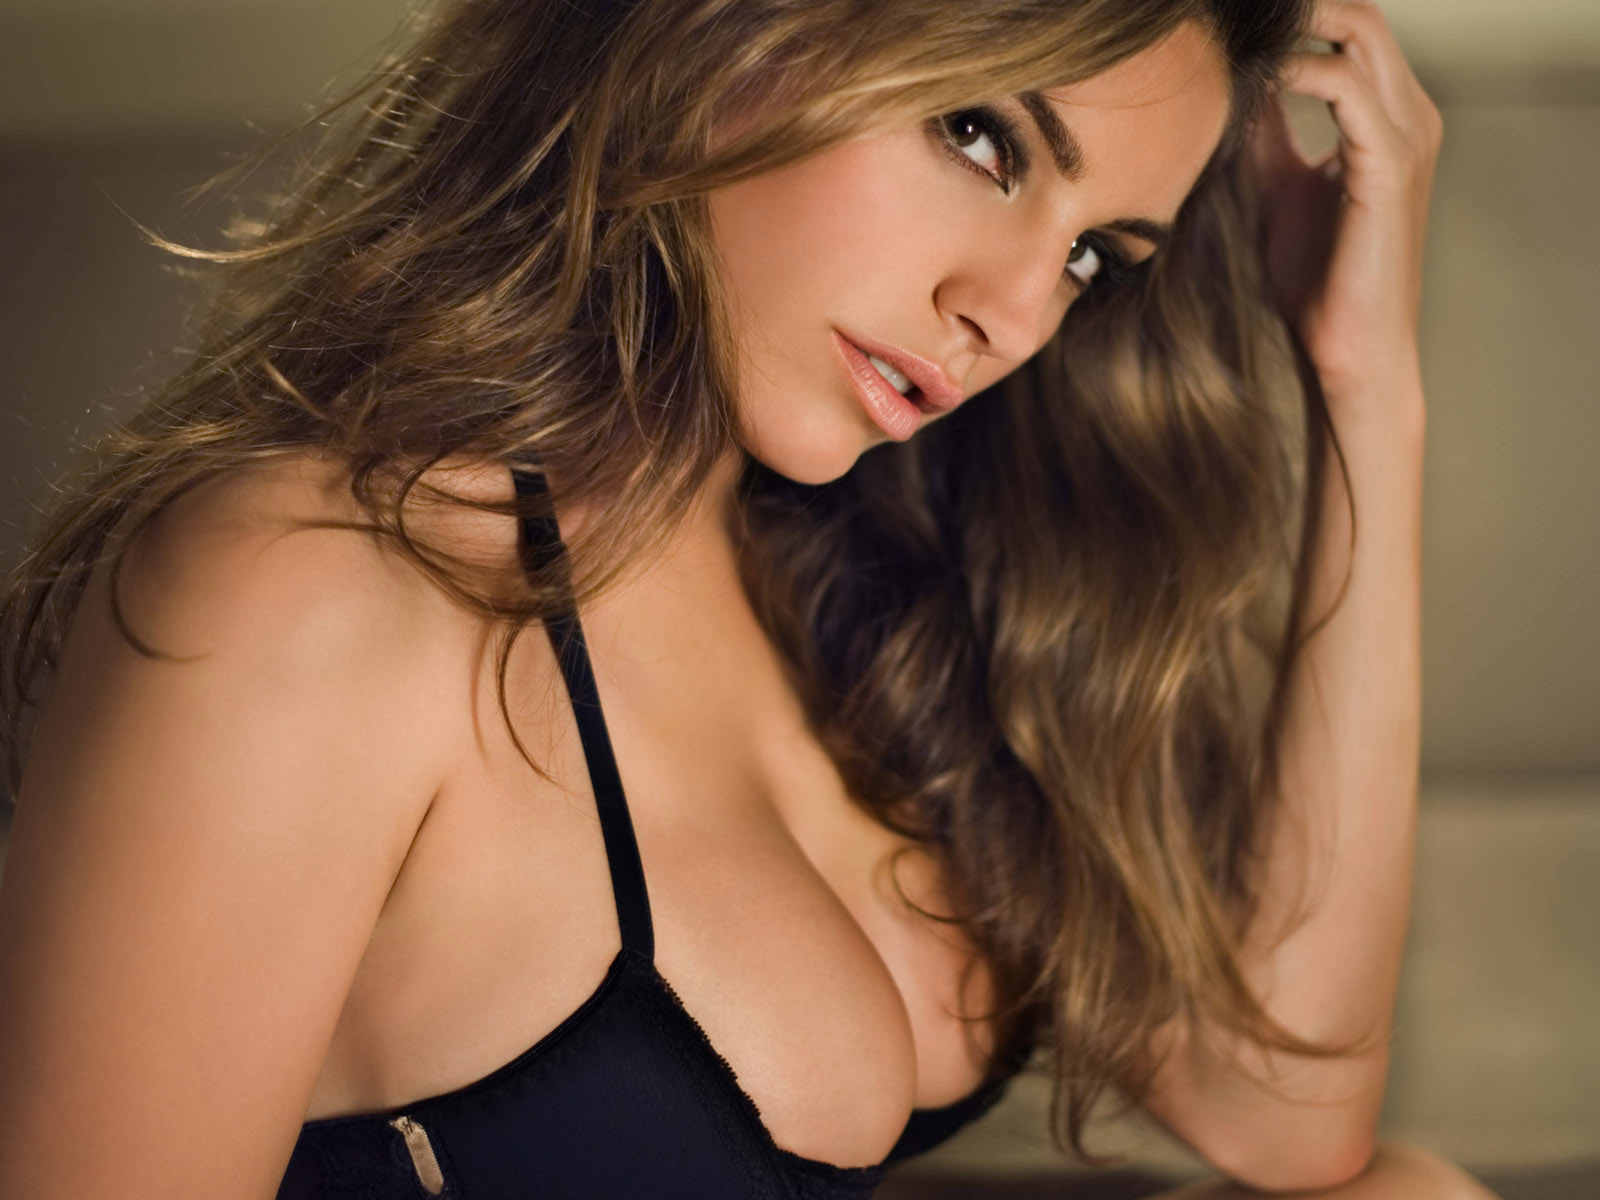 Kelly brook gallery idea Effectively?